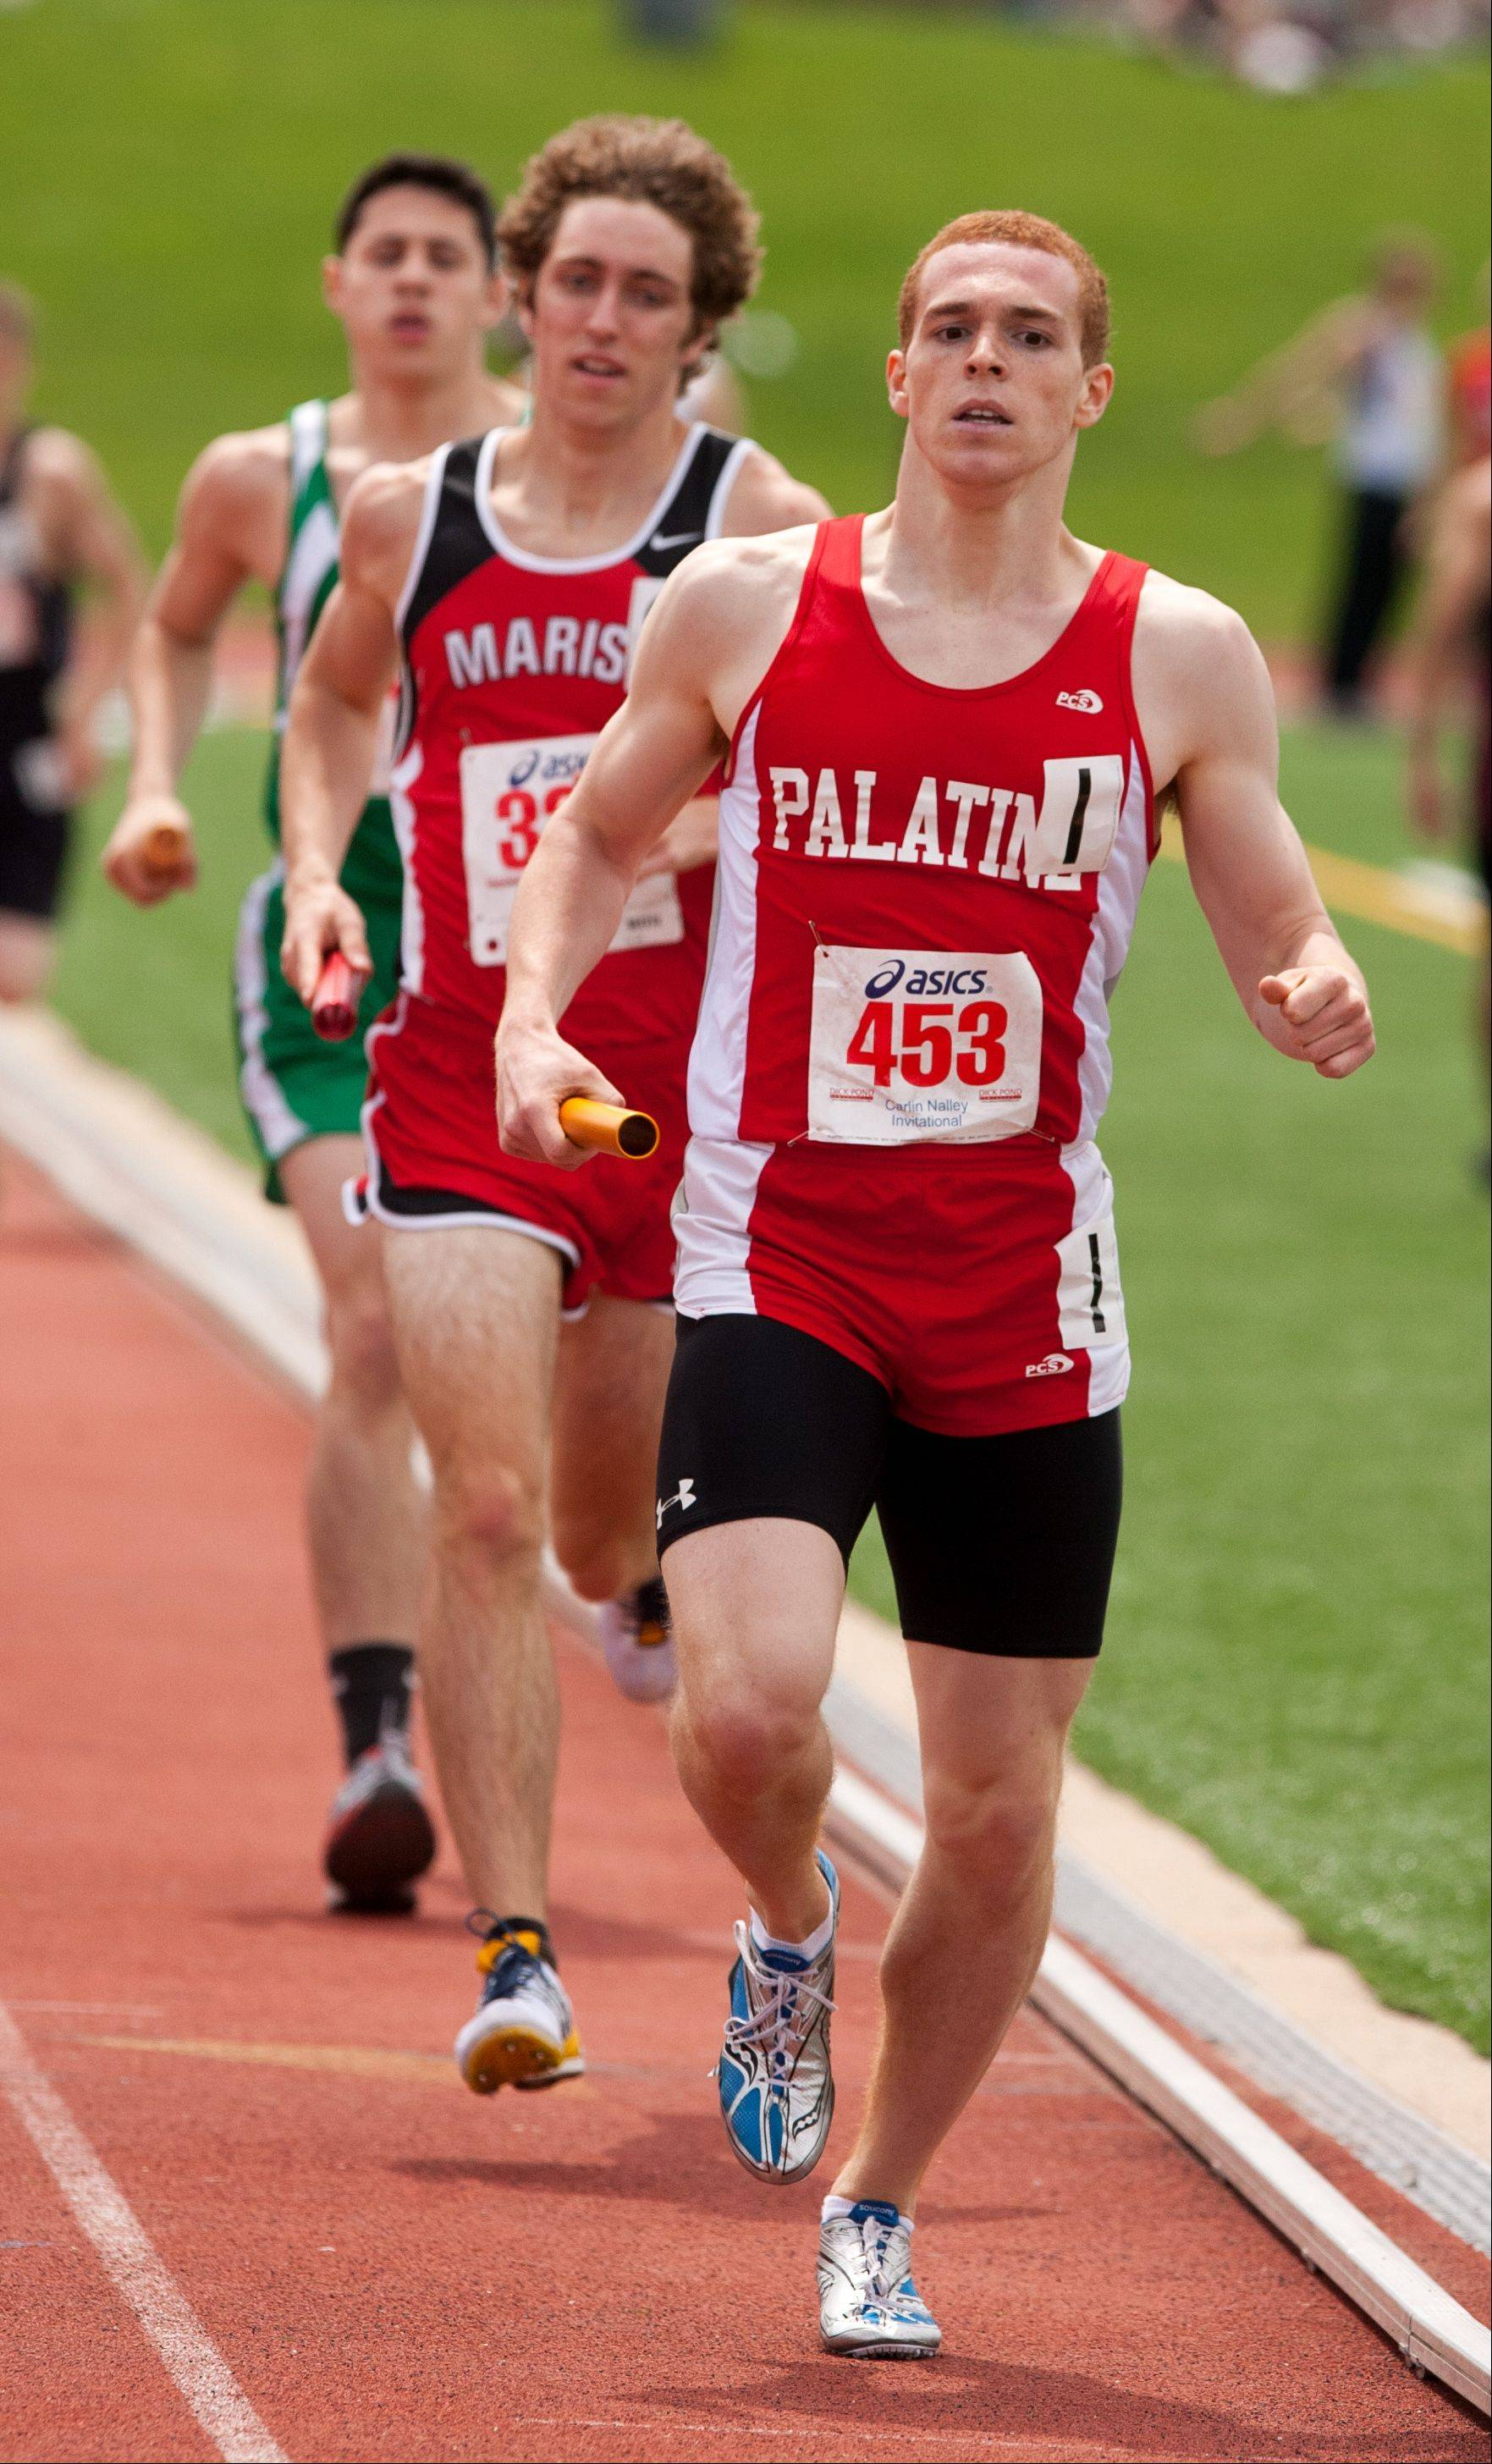 Palatine's Andrew Clingerman anchors a record breaking 4x800 meter relay win, during the 46th annual Carlin Nalley Boys� Track Invitational at Benedictine University in Lisle. The Pirates ran a 7:49.99 time.